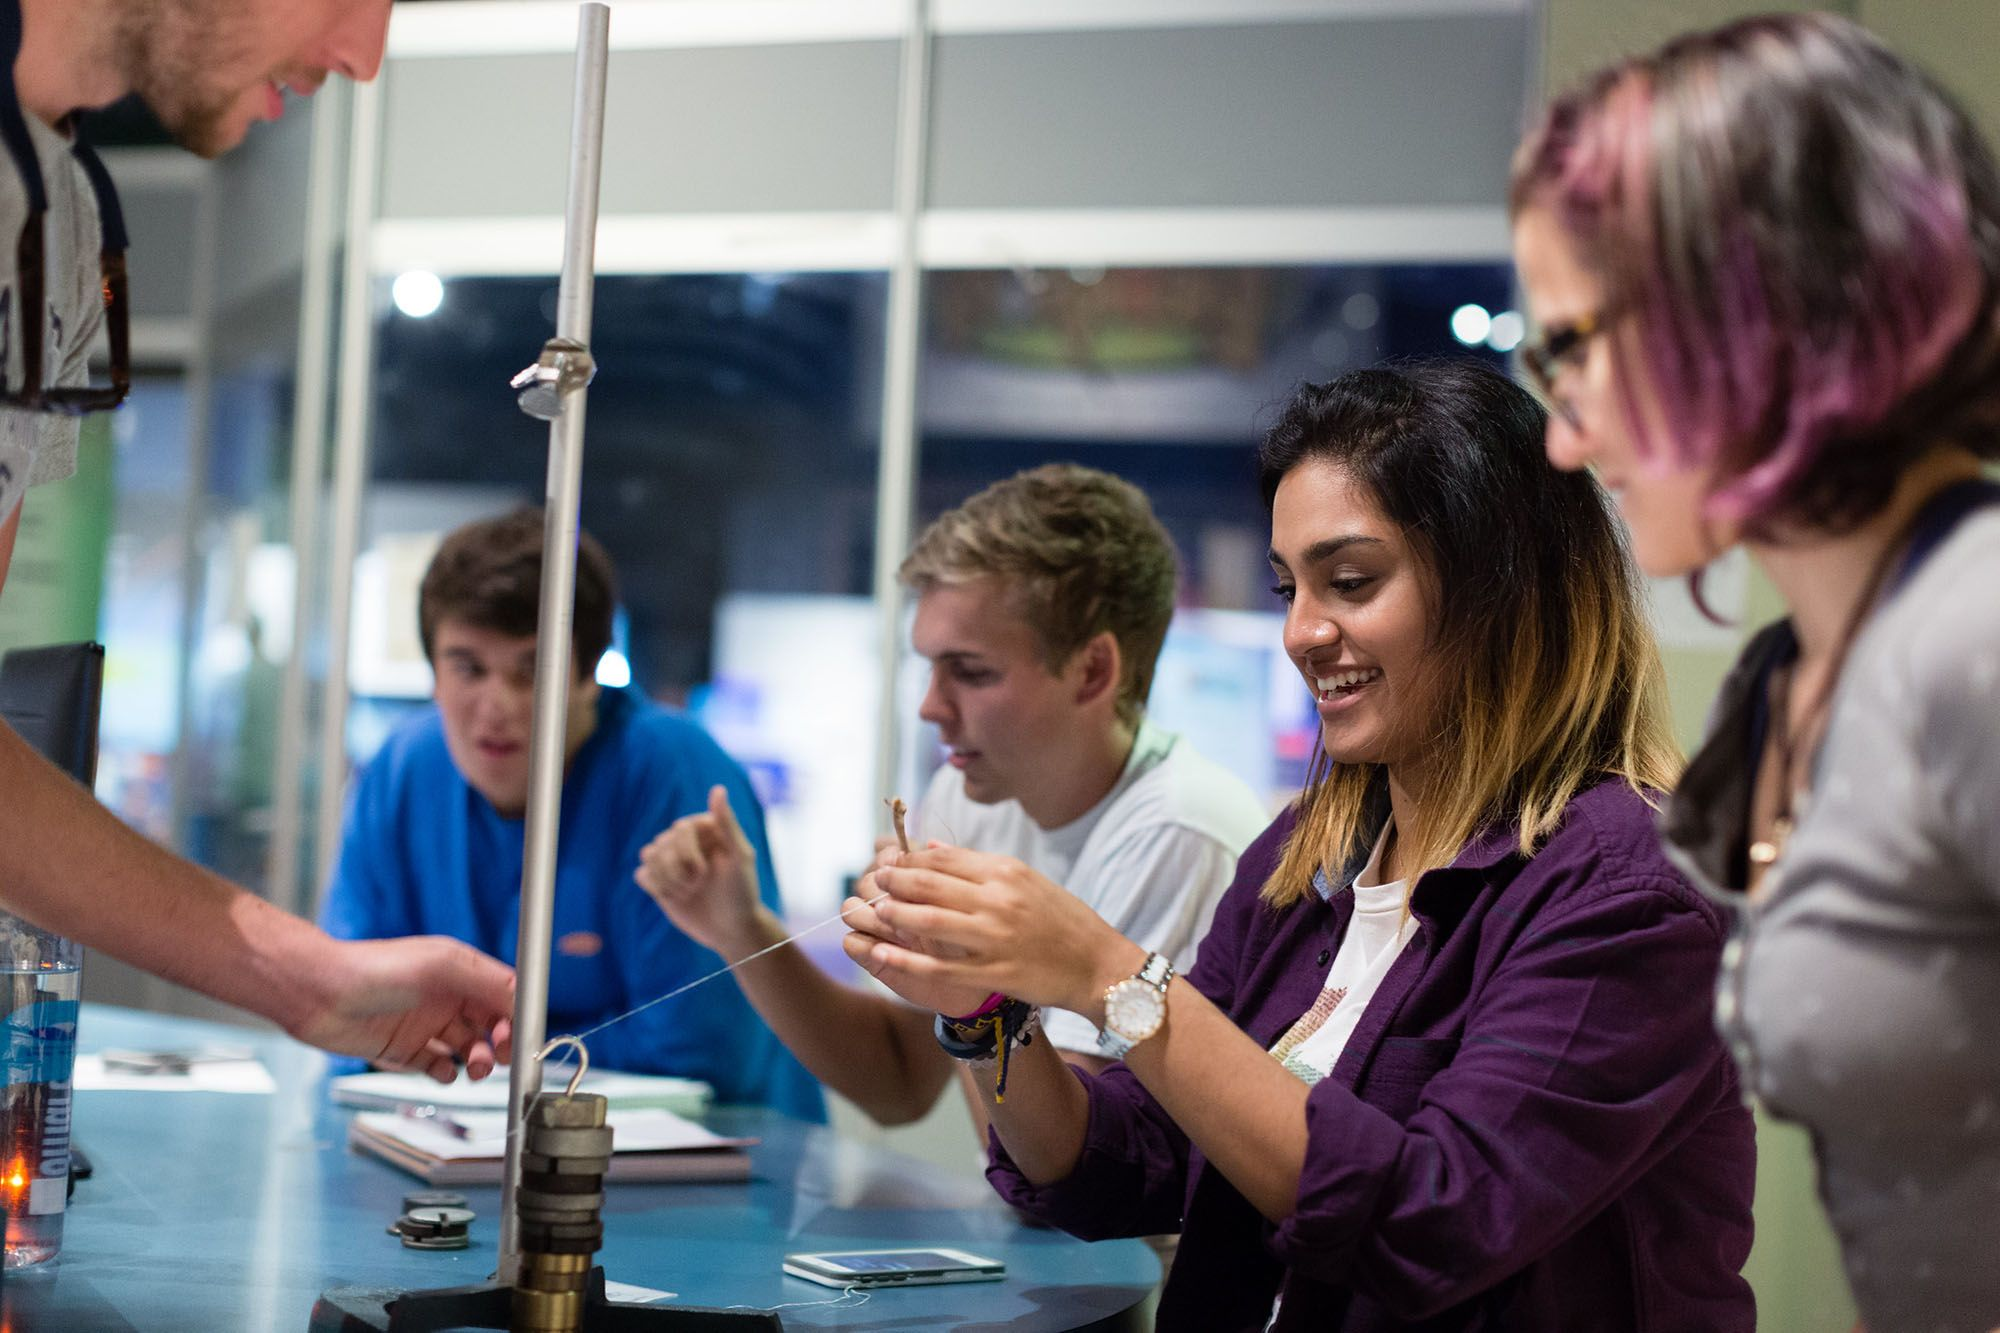 Students experiment with weights and measures as part of a physics course.